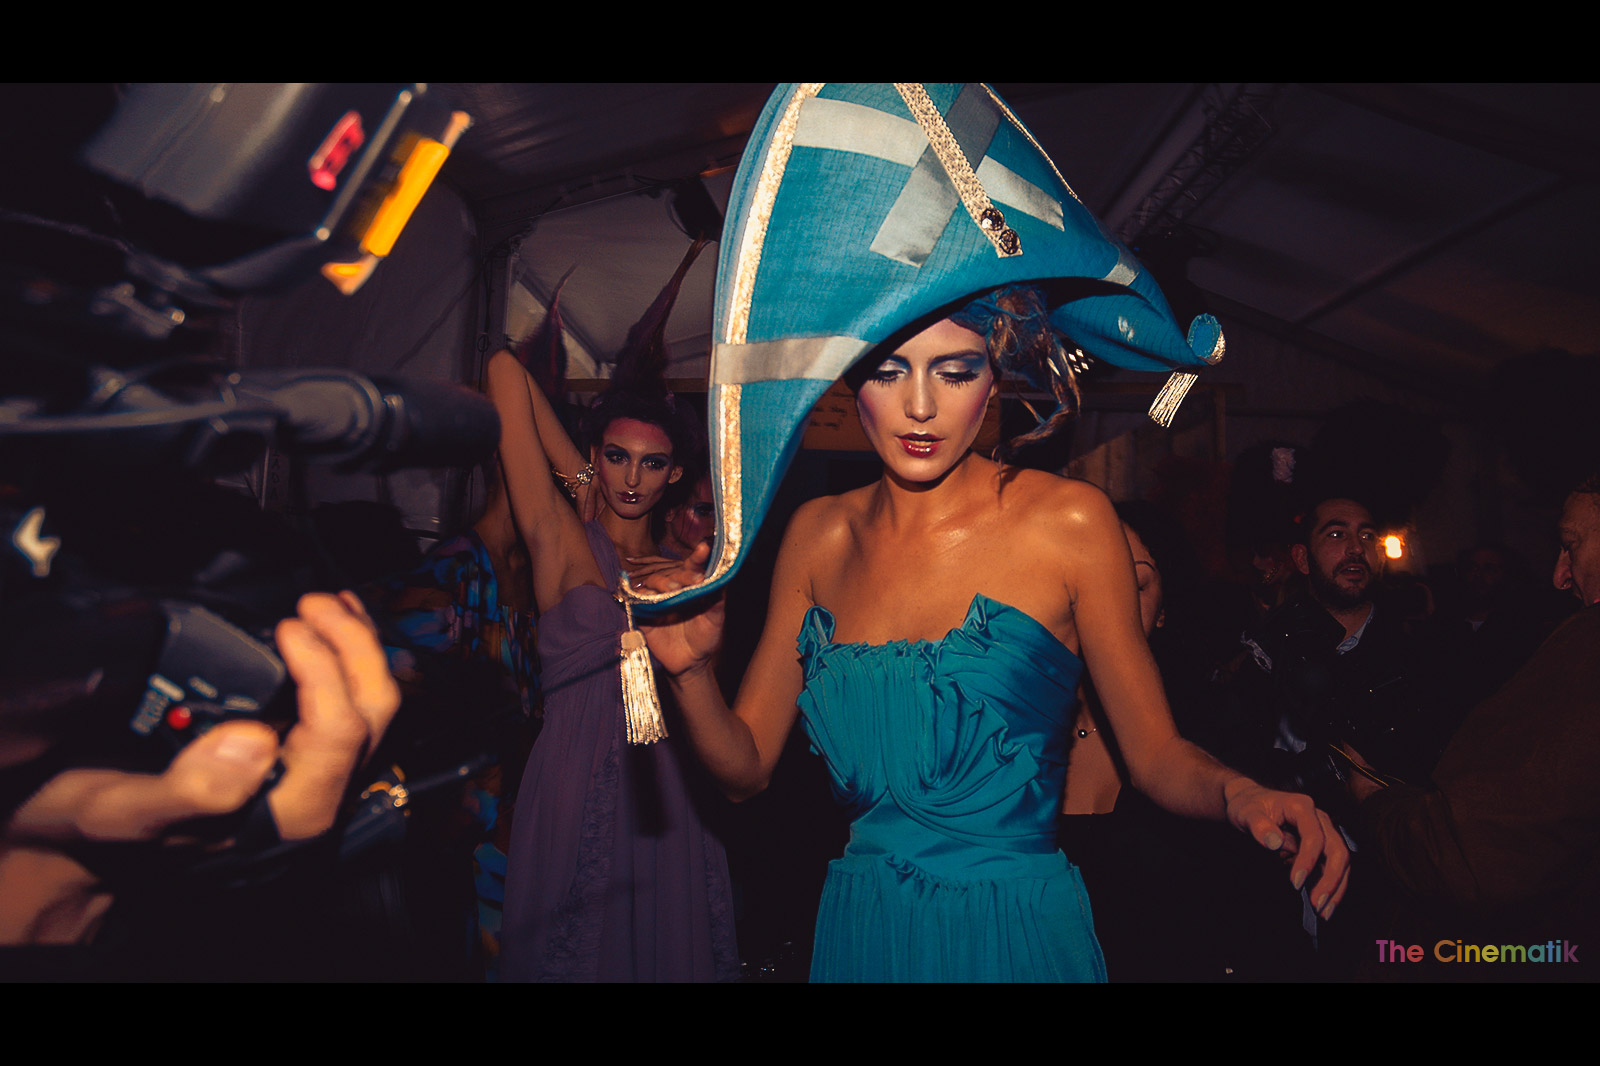 Copy of Amazing costumes at John Galliano fashion show Paris fashion Week Cinematic photography by Kamal Lahmadi / The Cinematik